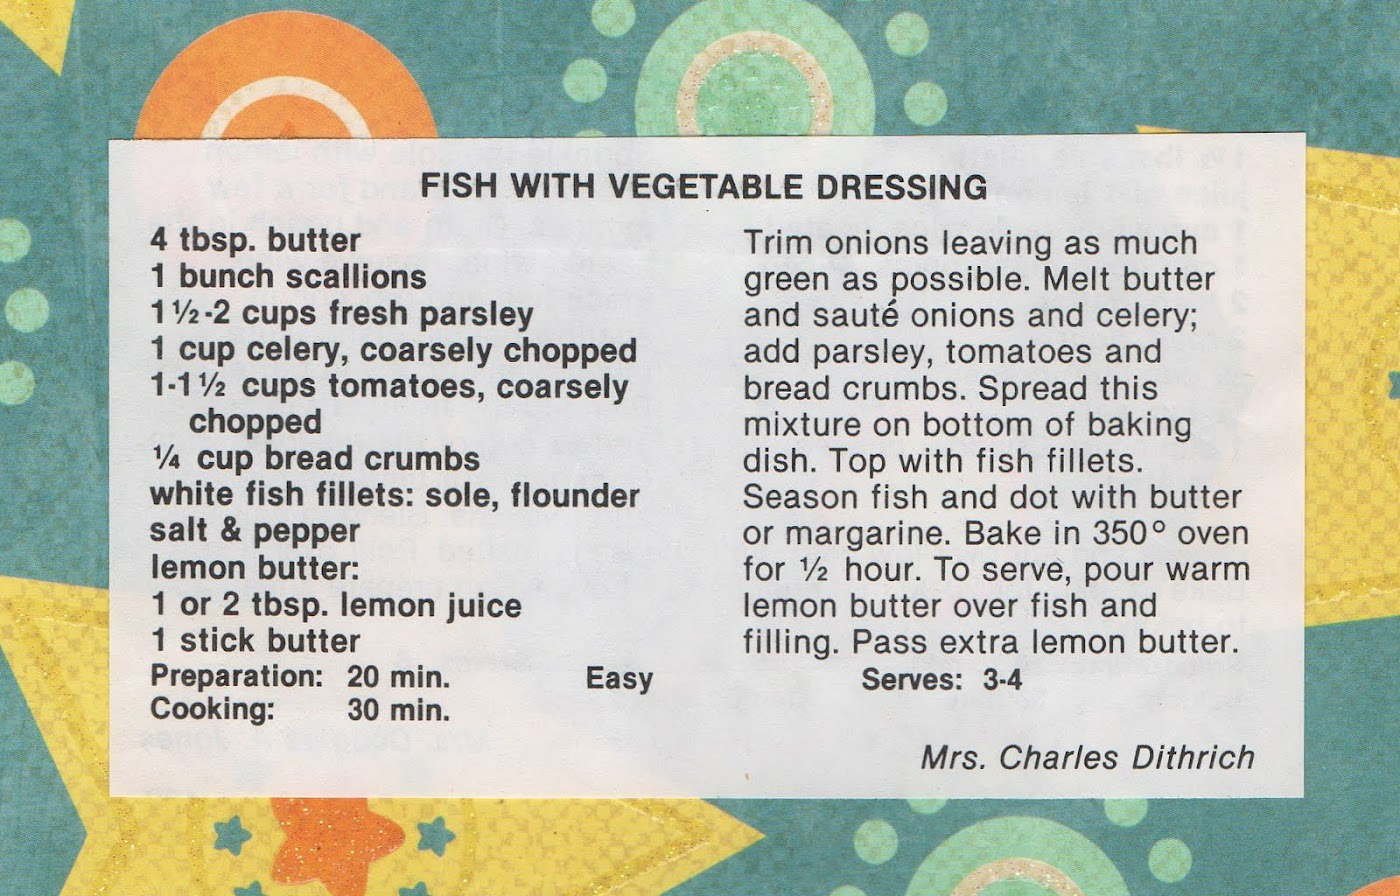 Fish with Vegetable Dressing (quick recipe)